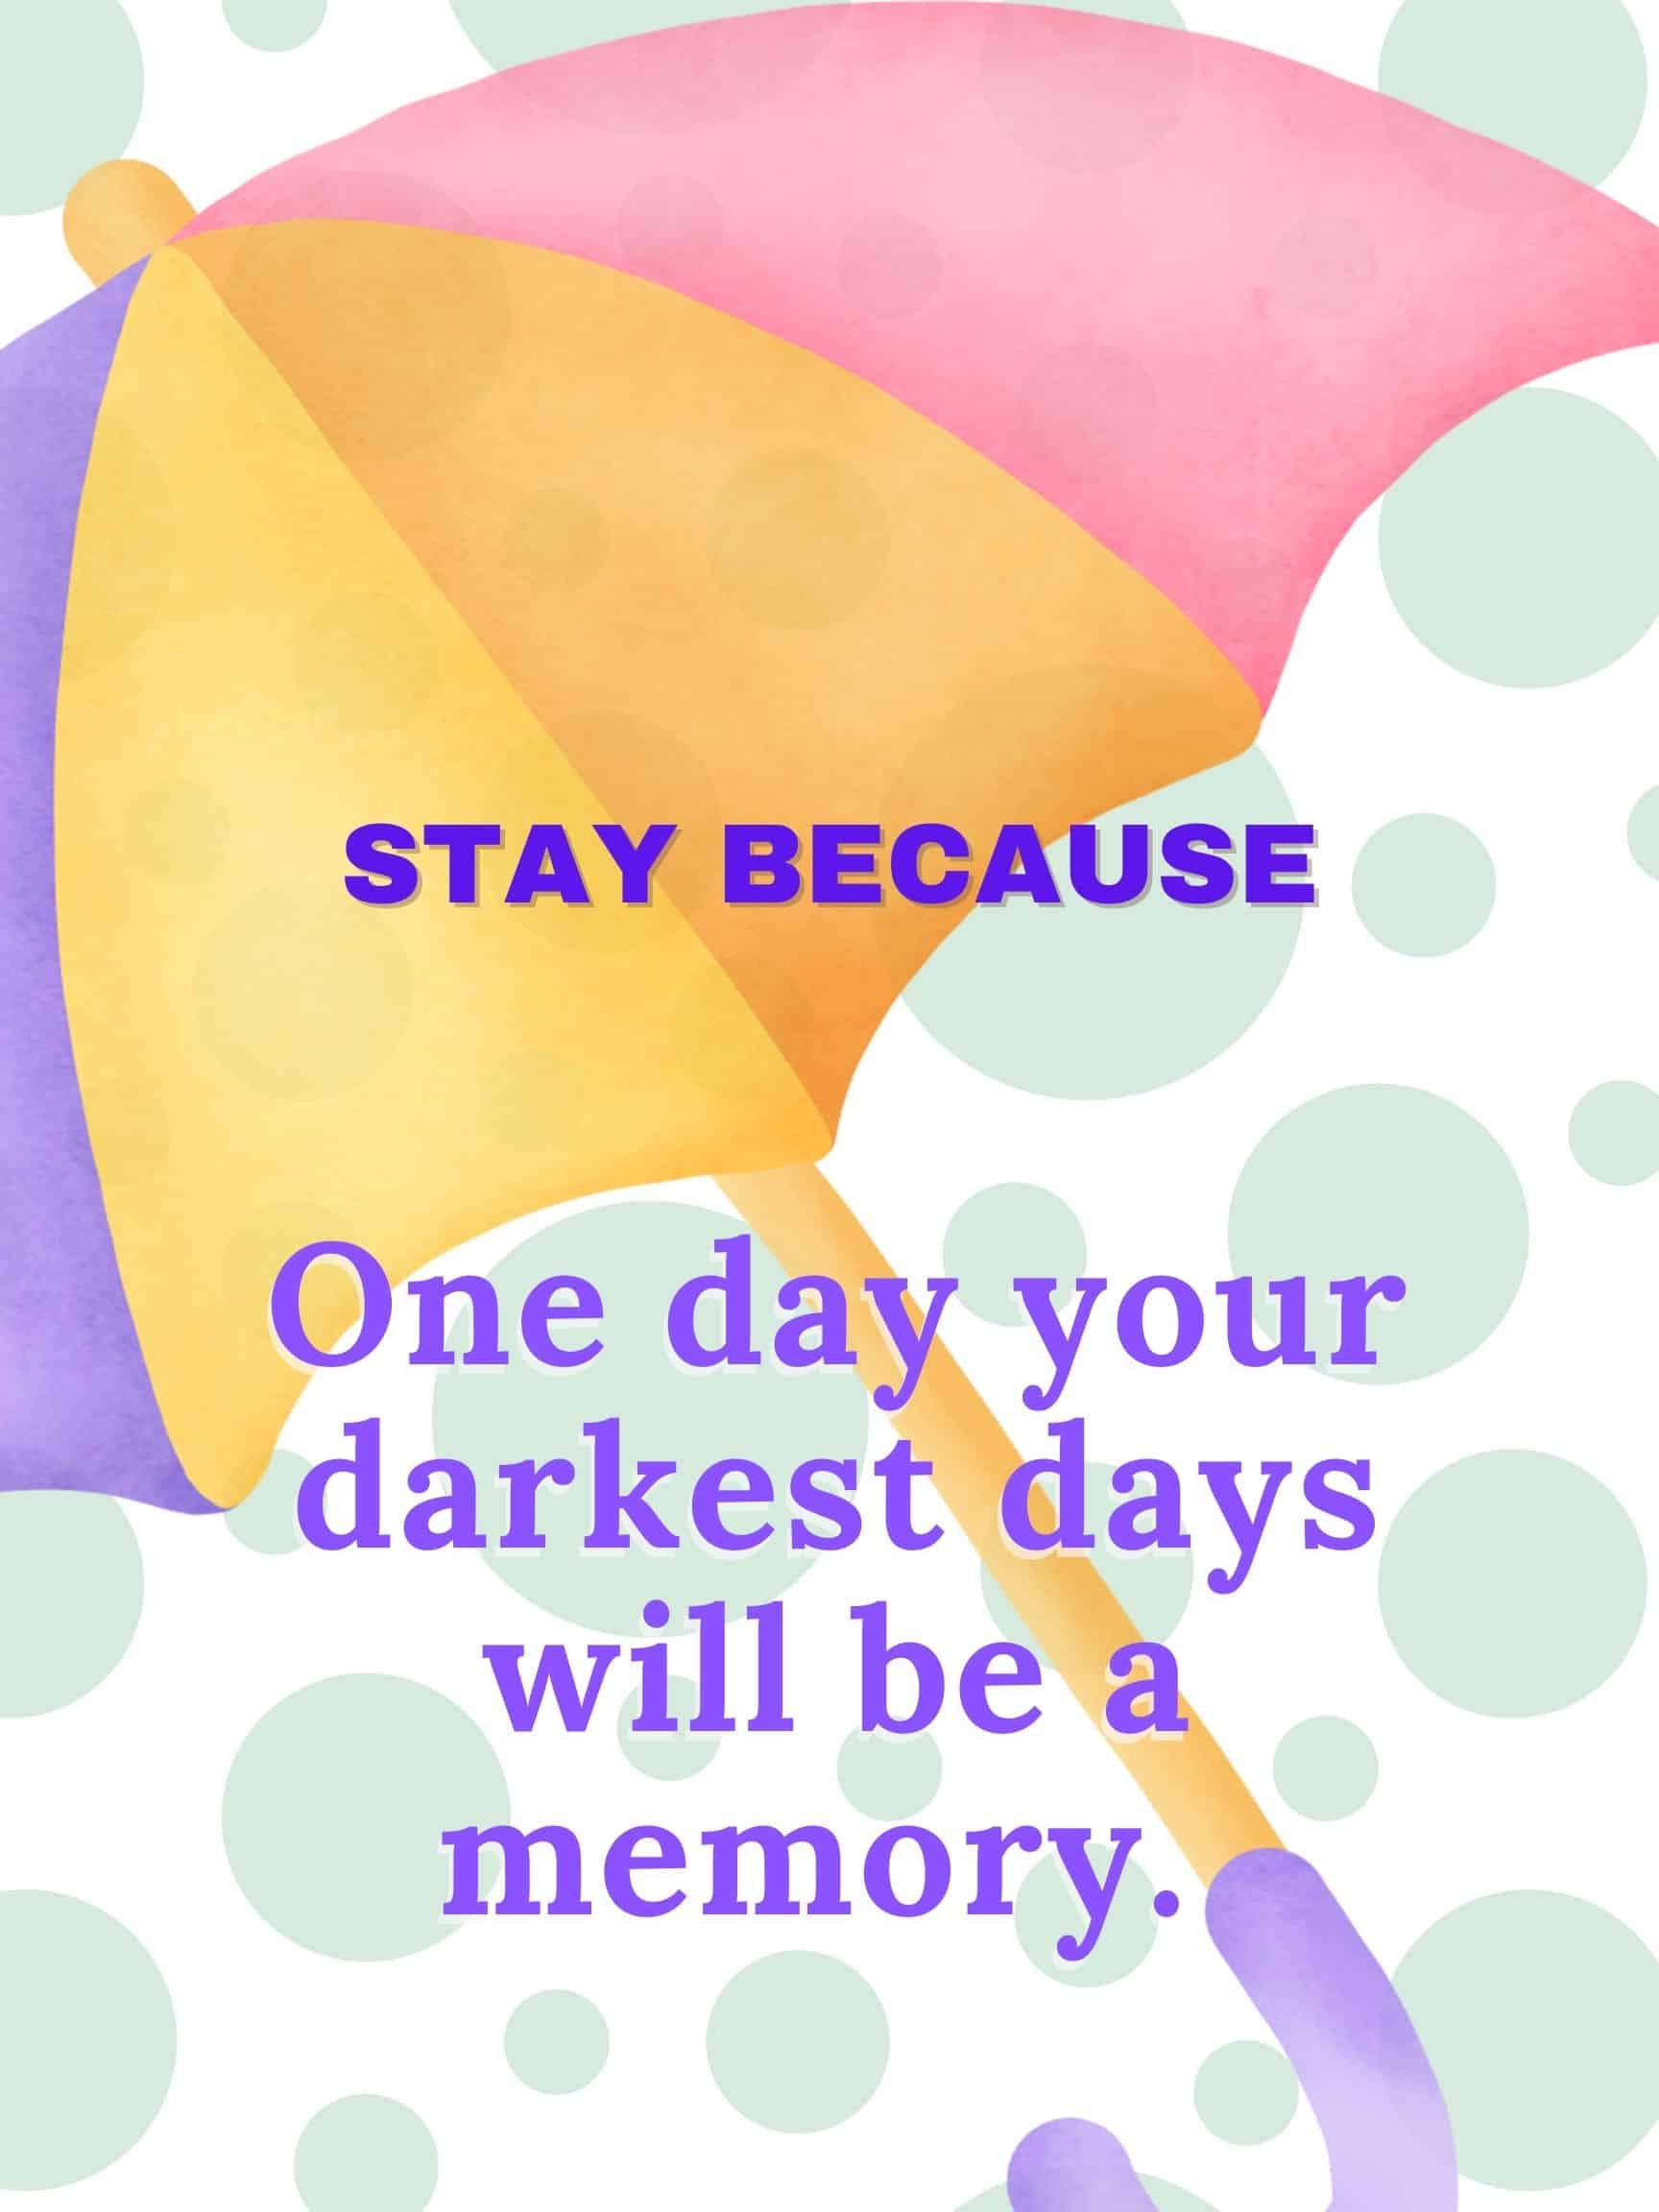 One day your darkest days will be a memory #StayBecause